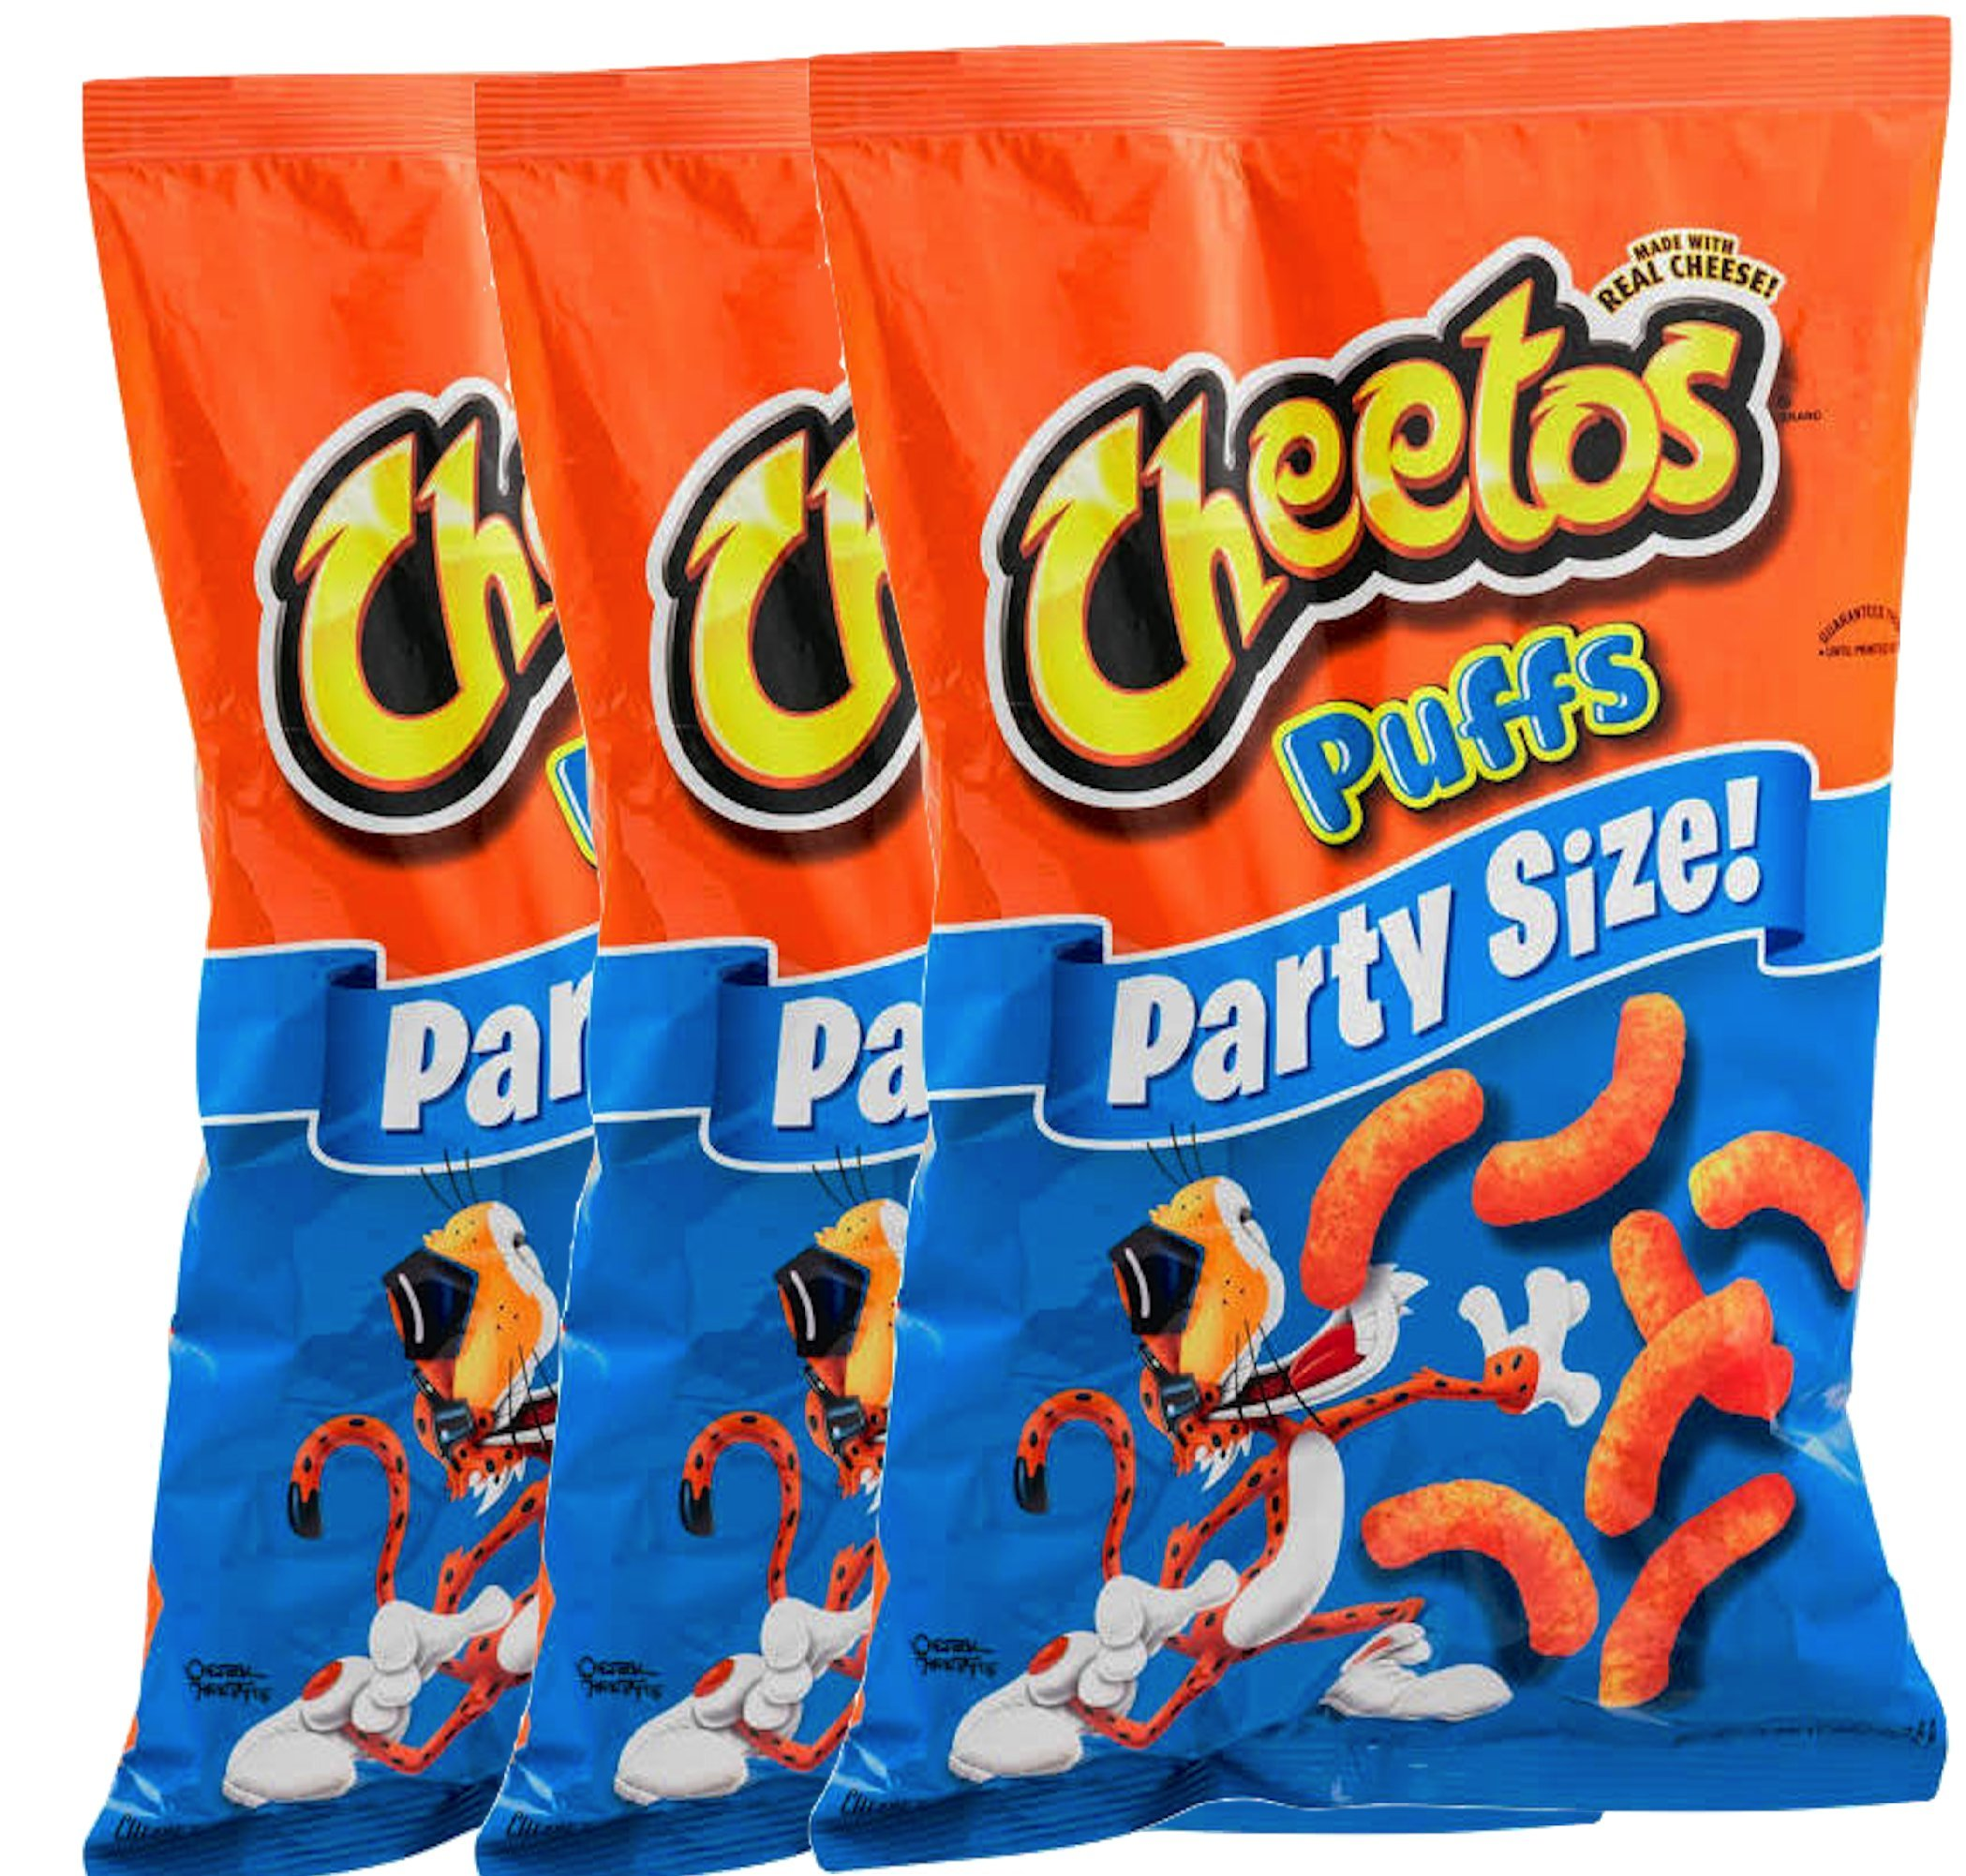 Cheetos Cheese Puffs Party Size 16 oz Bag (3)